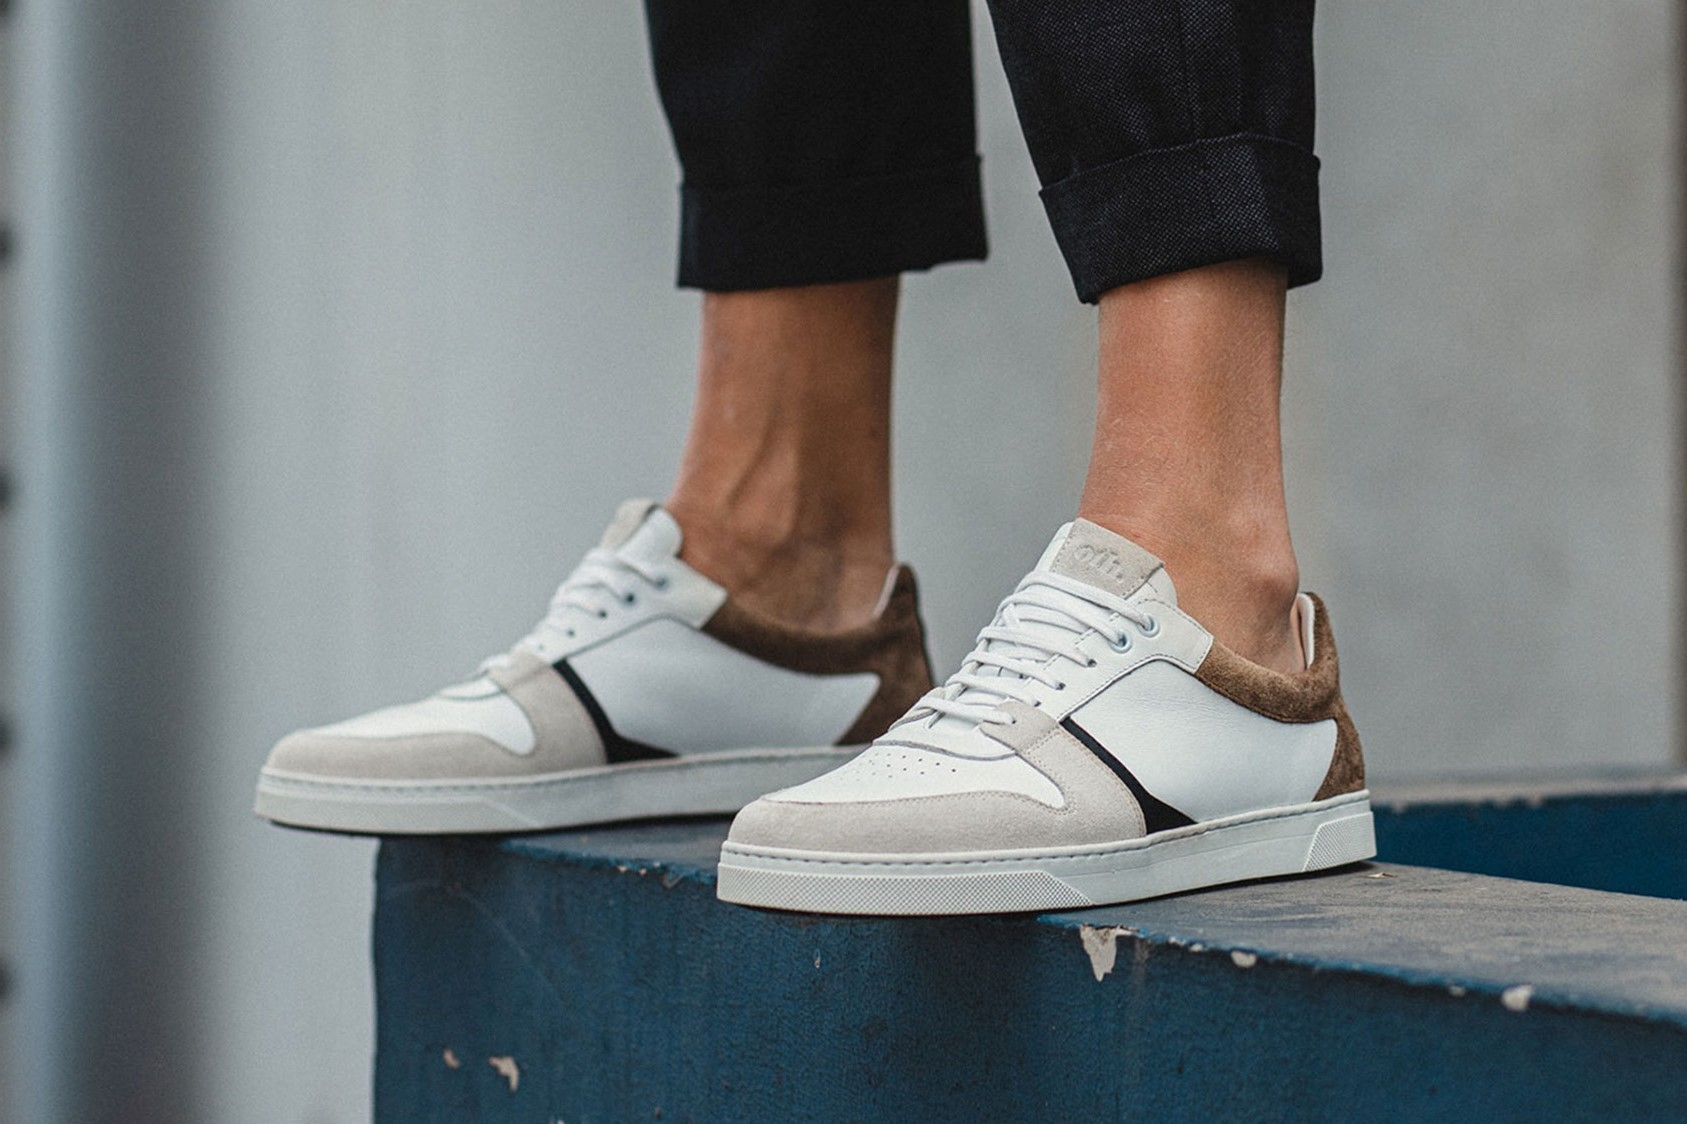 Sustainable Ethical Shoes in Europe